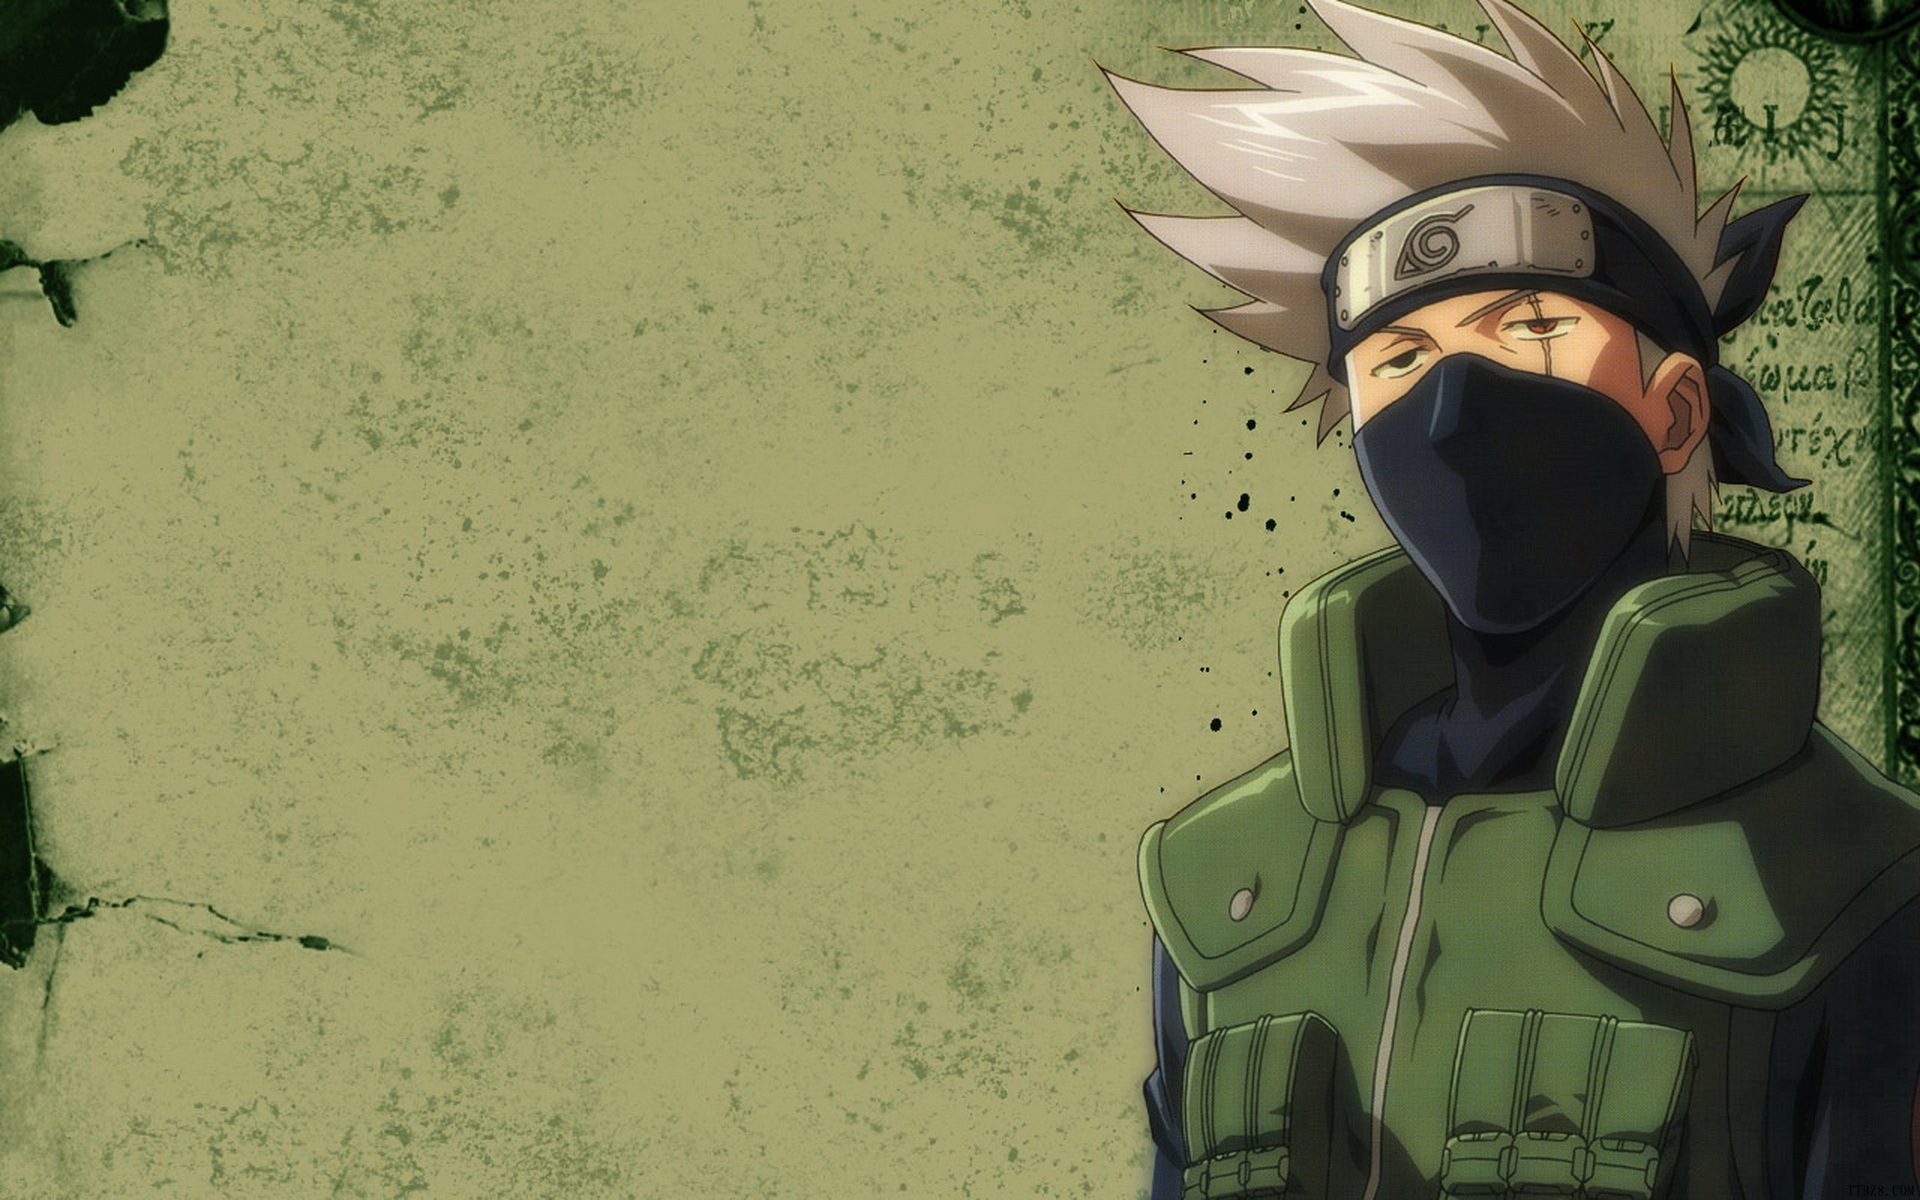 kakashi background hatake wallpaper christmas naruto anime 1920x1200